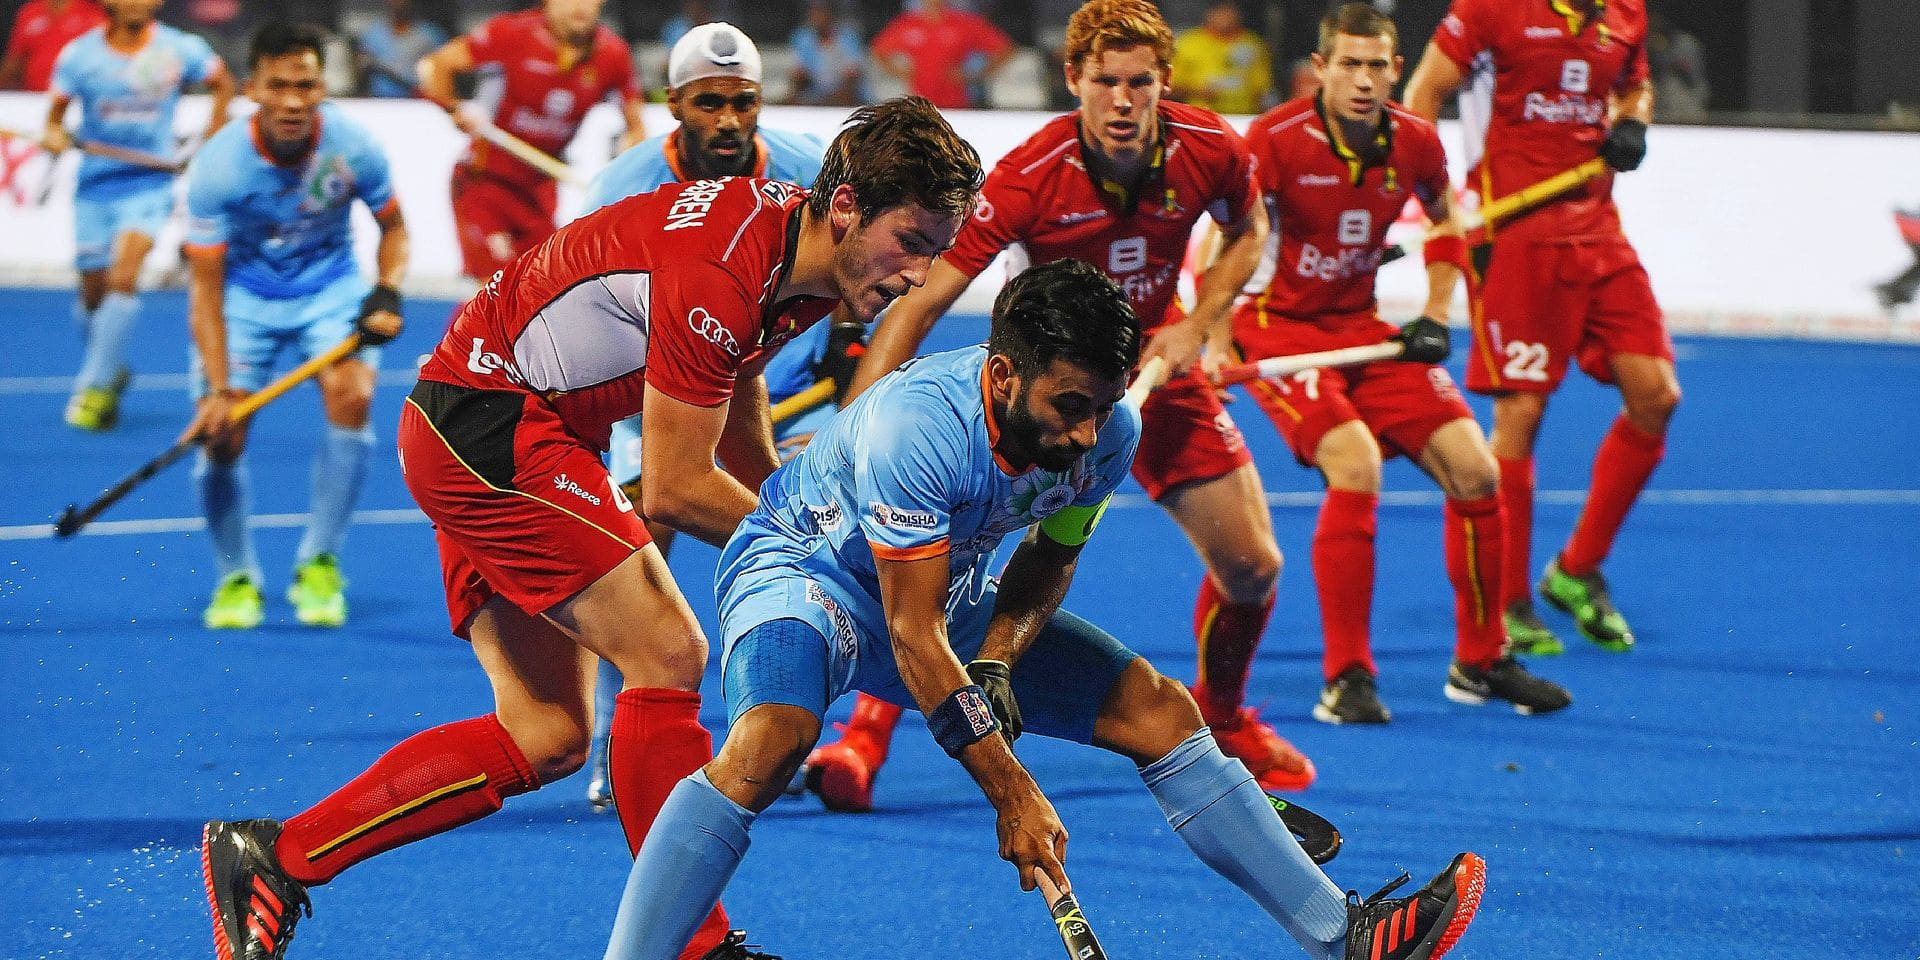 India's Manpreet Singh (C) tries to dribble past Belgium players during the field hockey group stage match between India and Belgium at the 2018 Hockey World in Bhubaneswar on December 2, 2018. (Photo by Dibyangshu SARKAR / AFP)